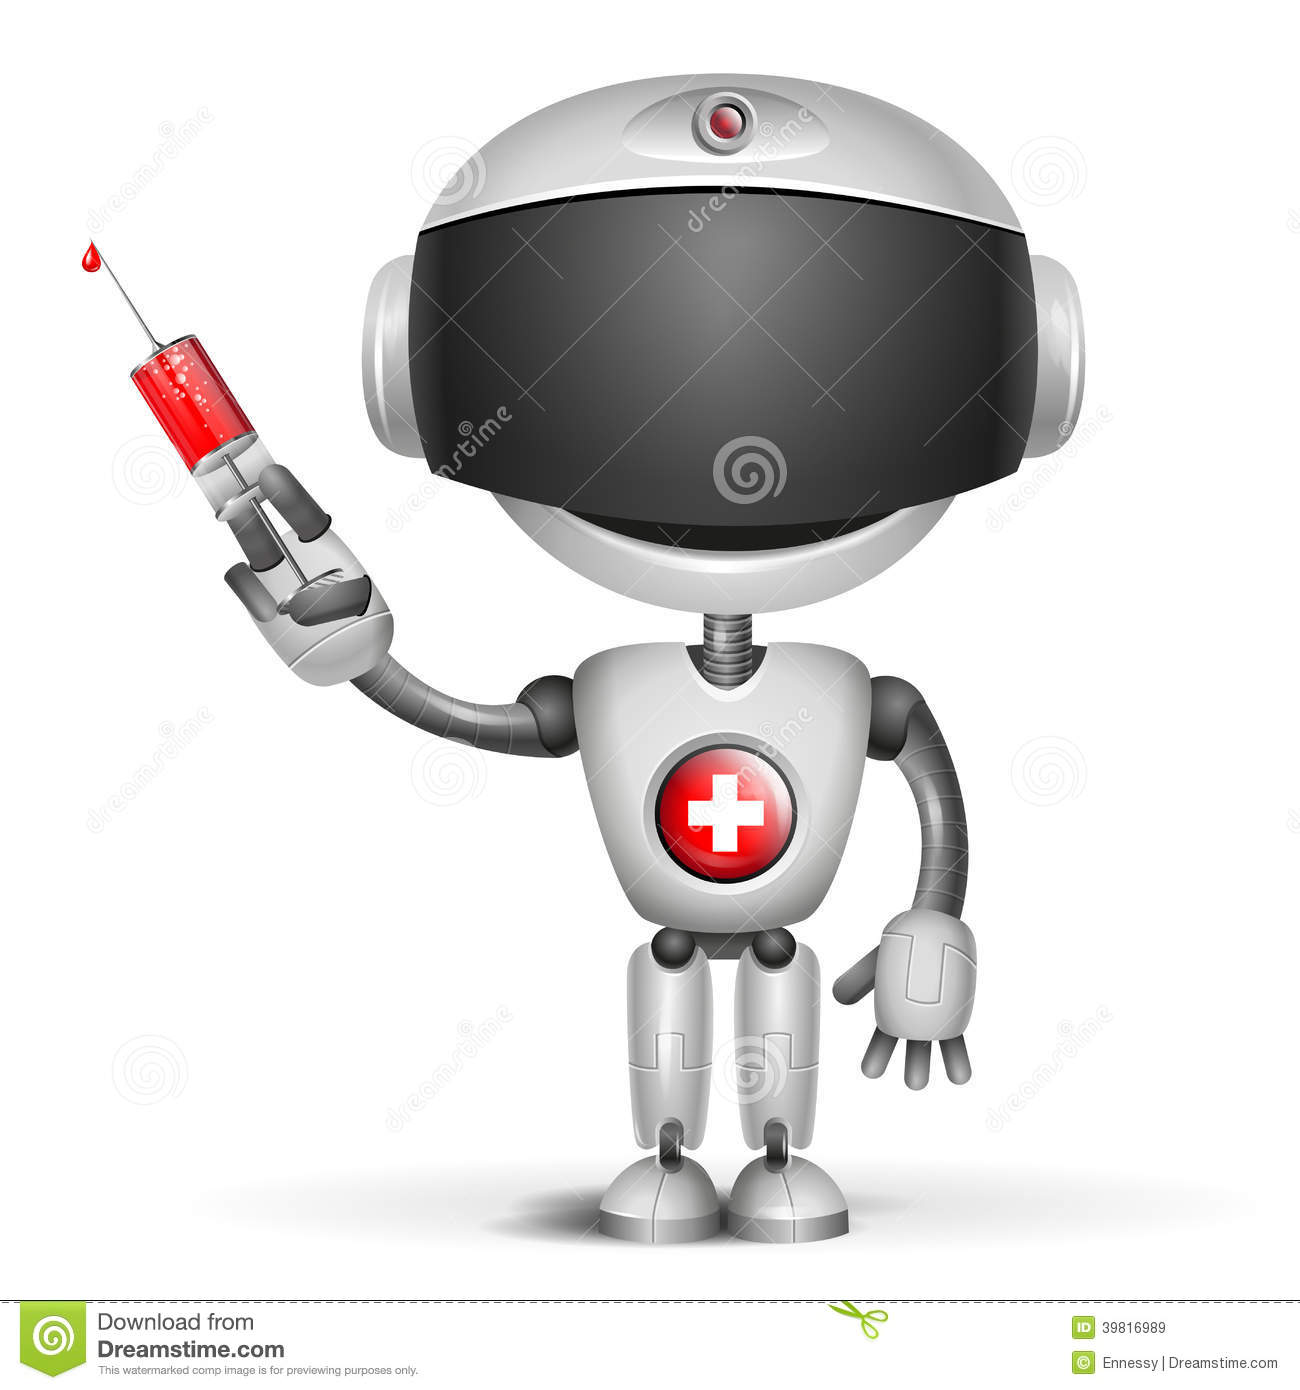 Robot Doctor holding medical injection syringe.